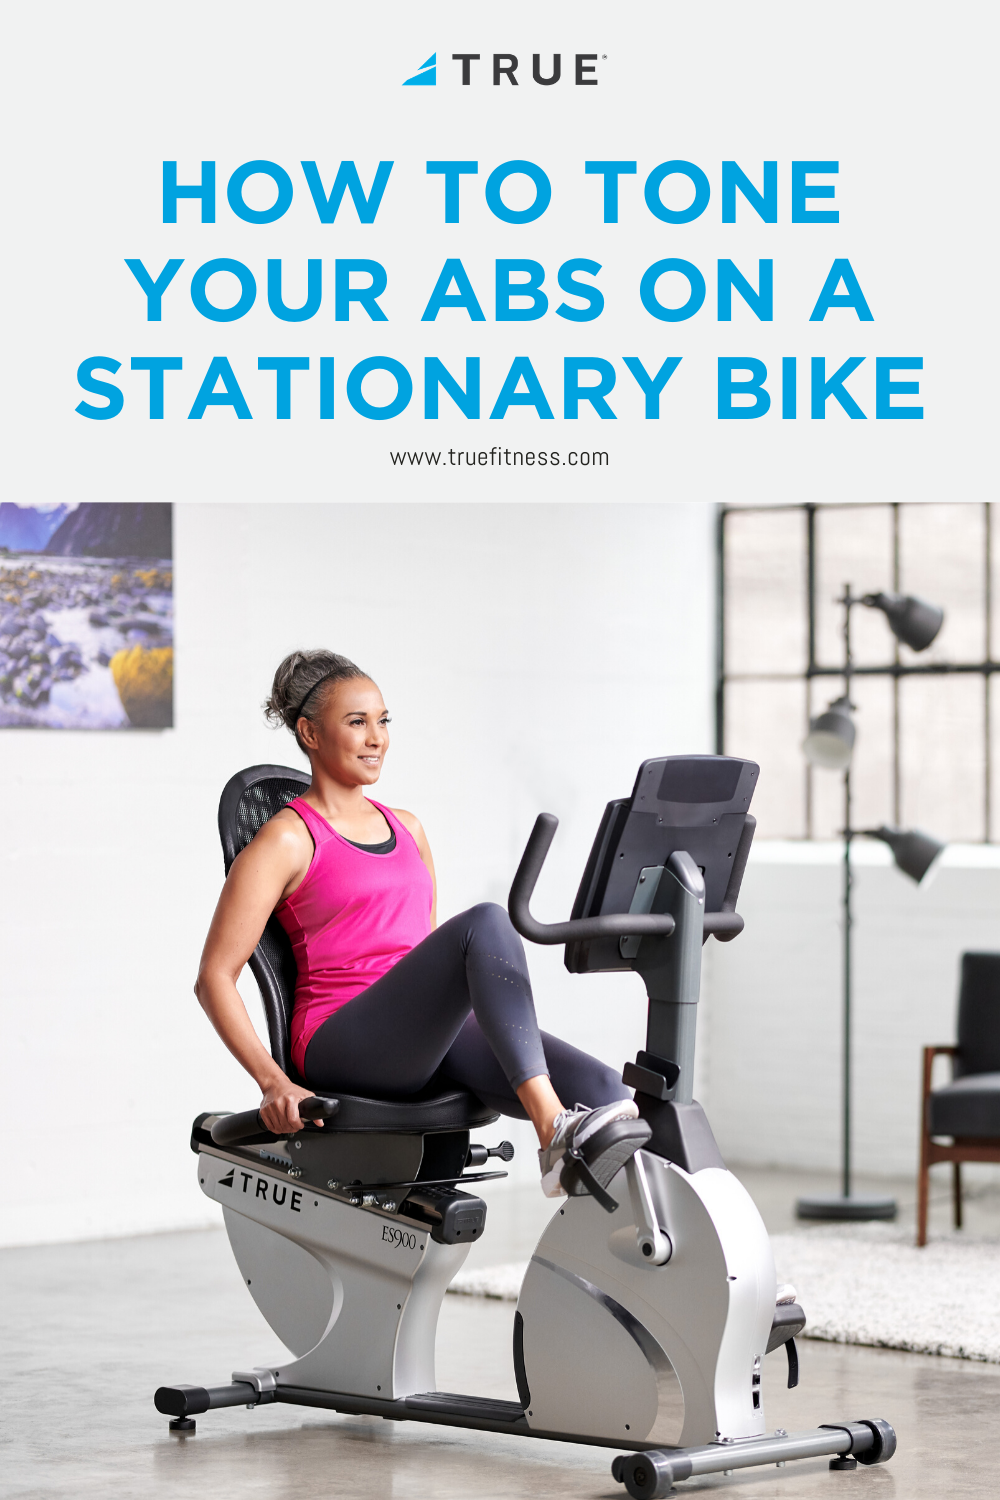 How To Tone Your Abs On A Stationary Bike In 2020 Biking Workout